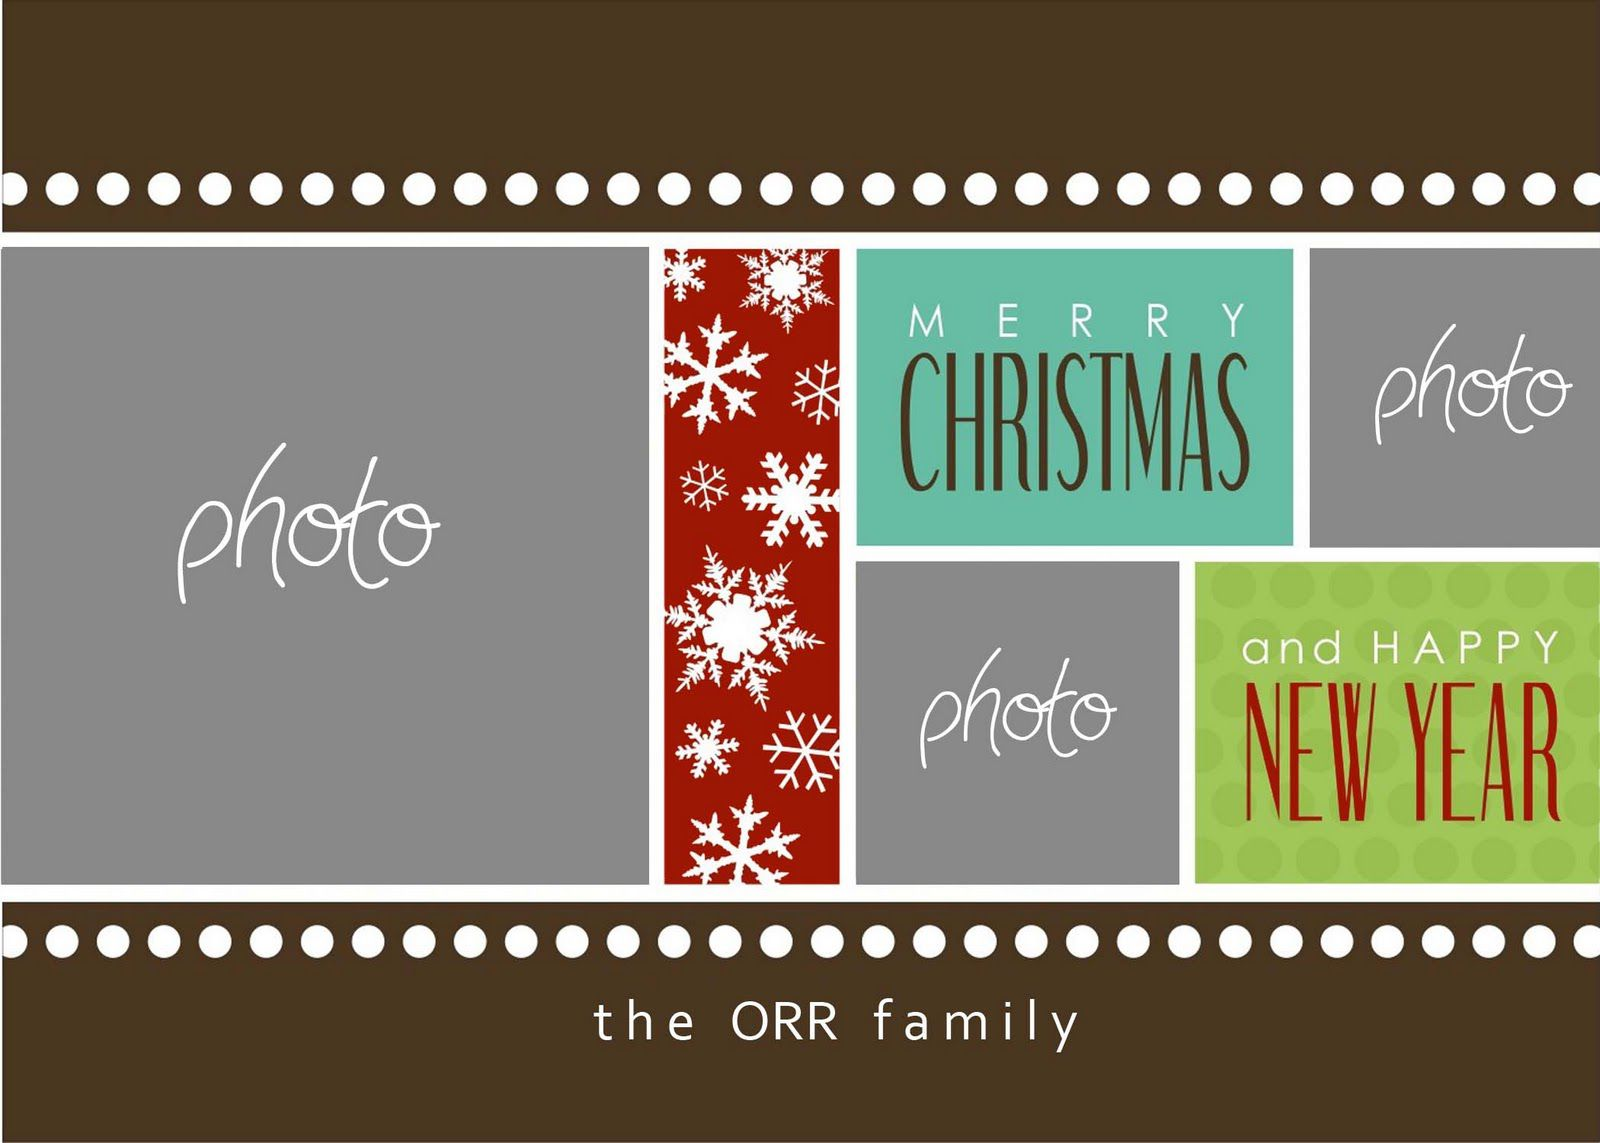 010 Imposing Holiday Card Template Free Image  Christma Word Recipe Editable MicrosoftFull